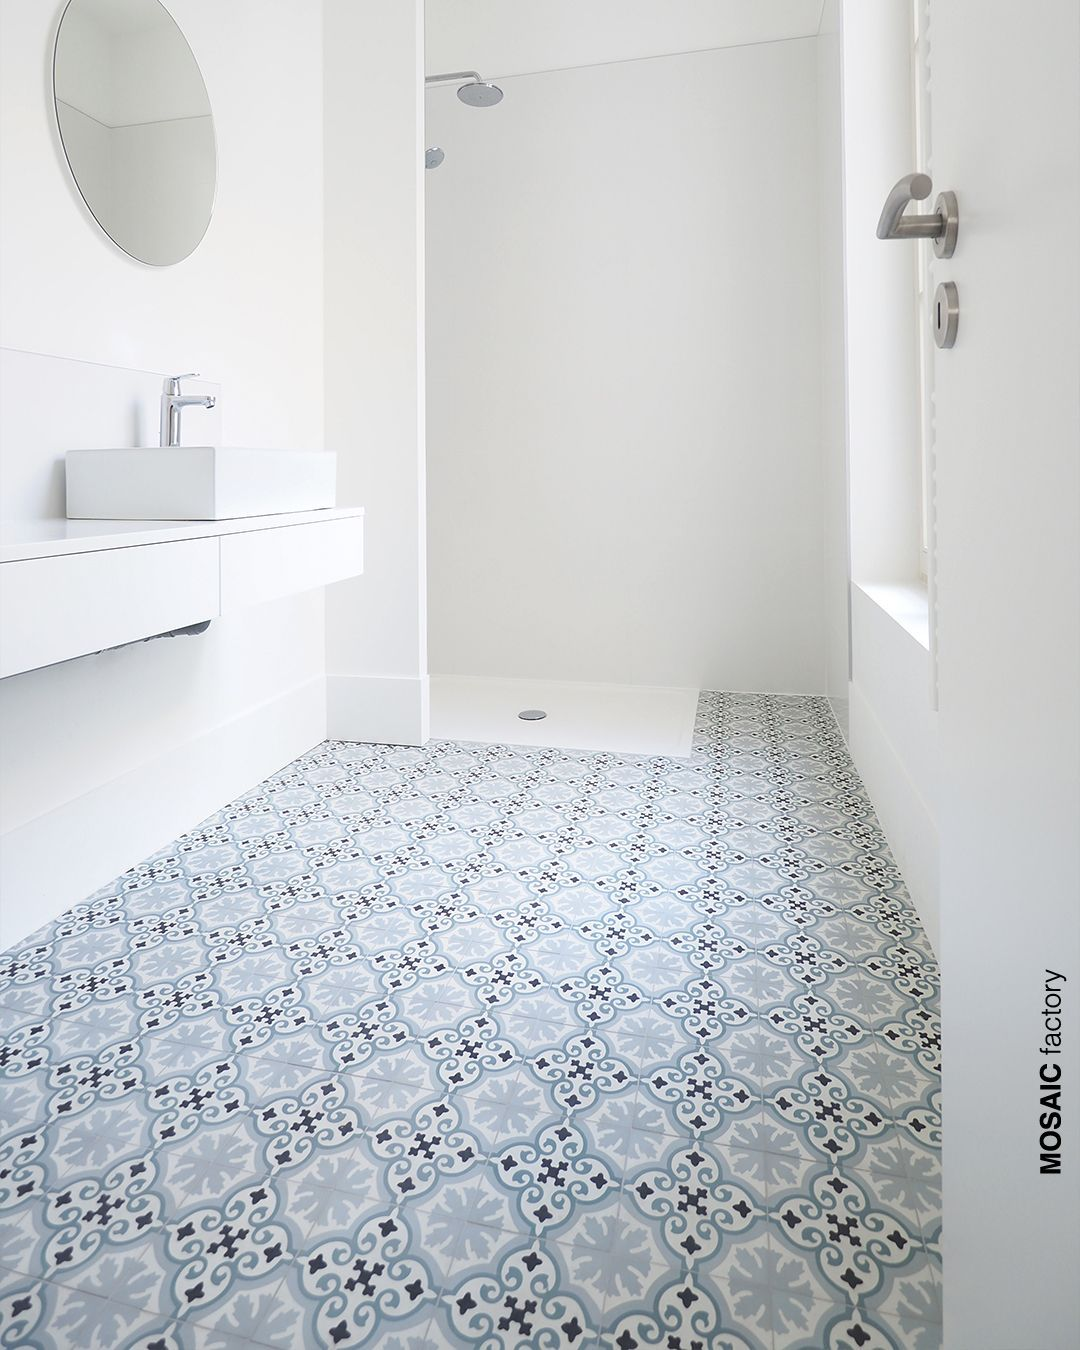 Feature Bathroom Floor With Light Blue White And Black Patterned Cement Tiles With Classic Moroc Blue Bathroom Tile Patterned Bathroom Tiles Bathroom Flooring